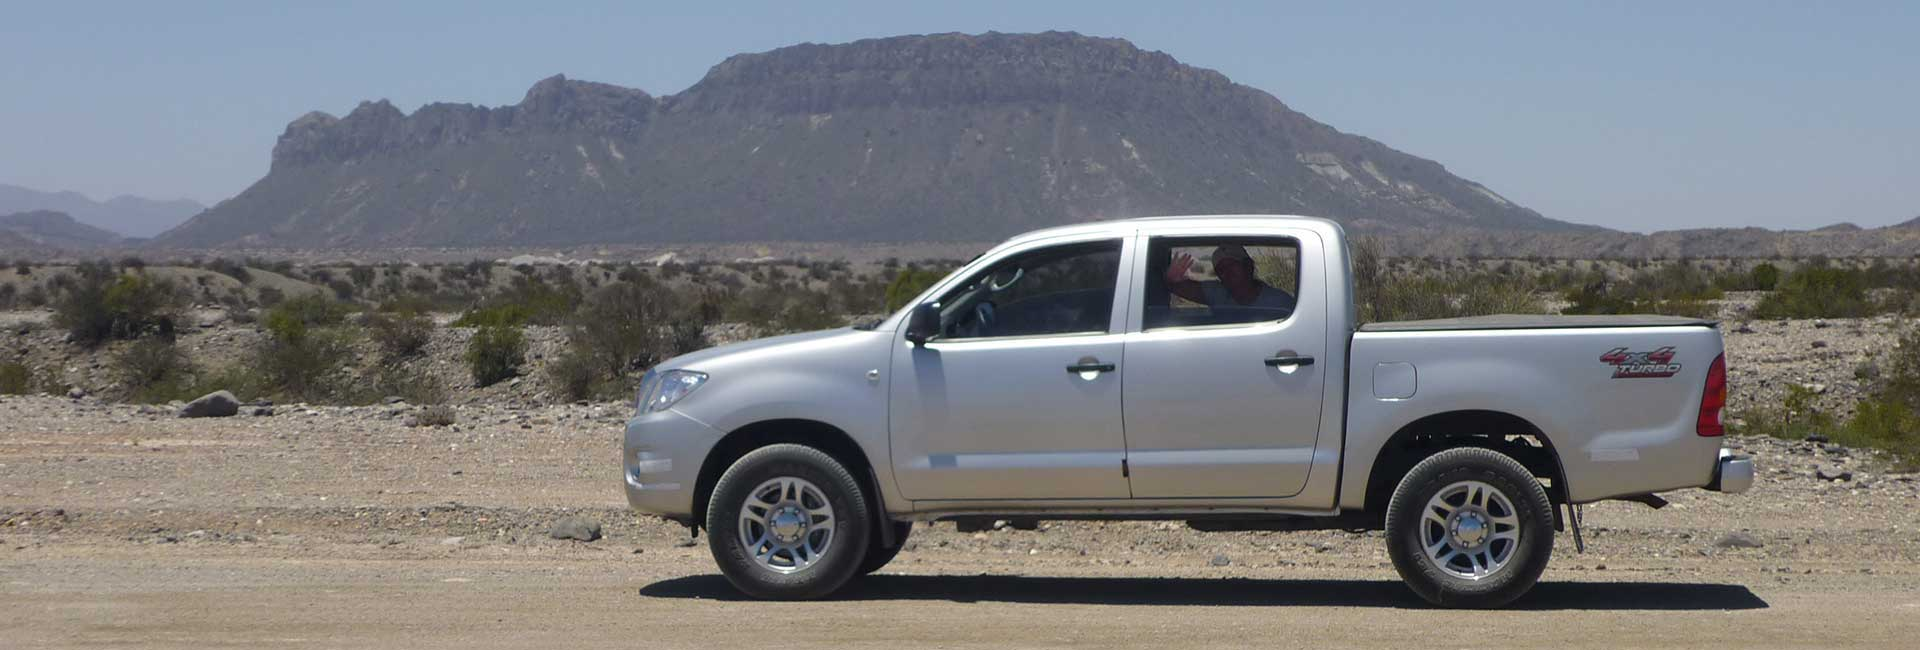 Toyota Hilux in the desert